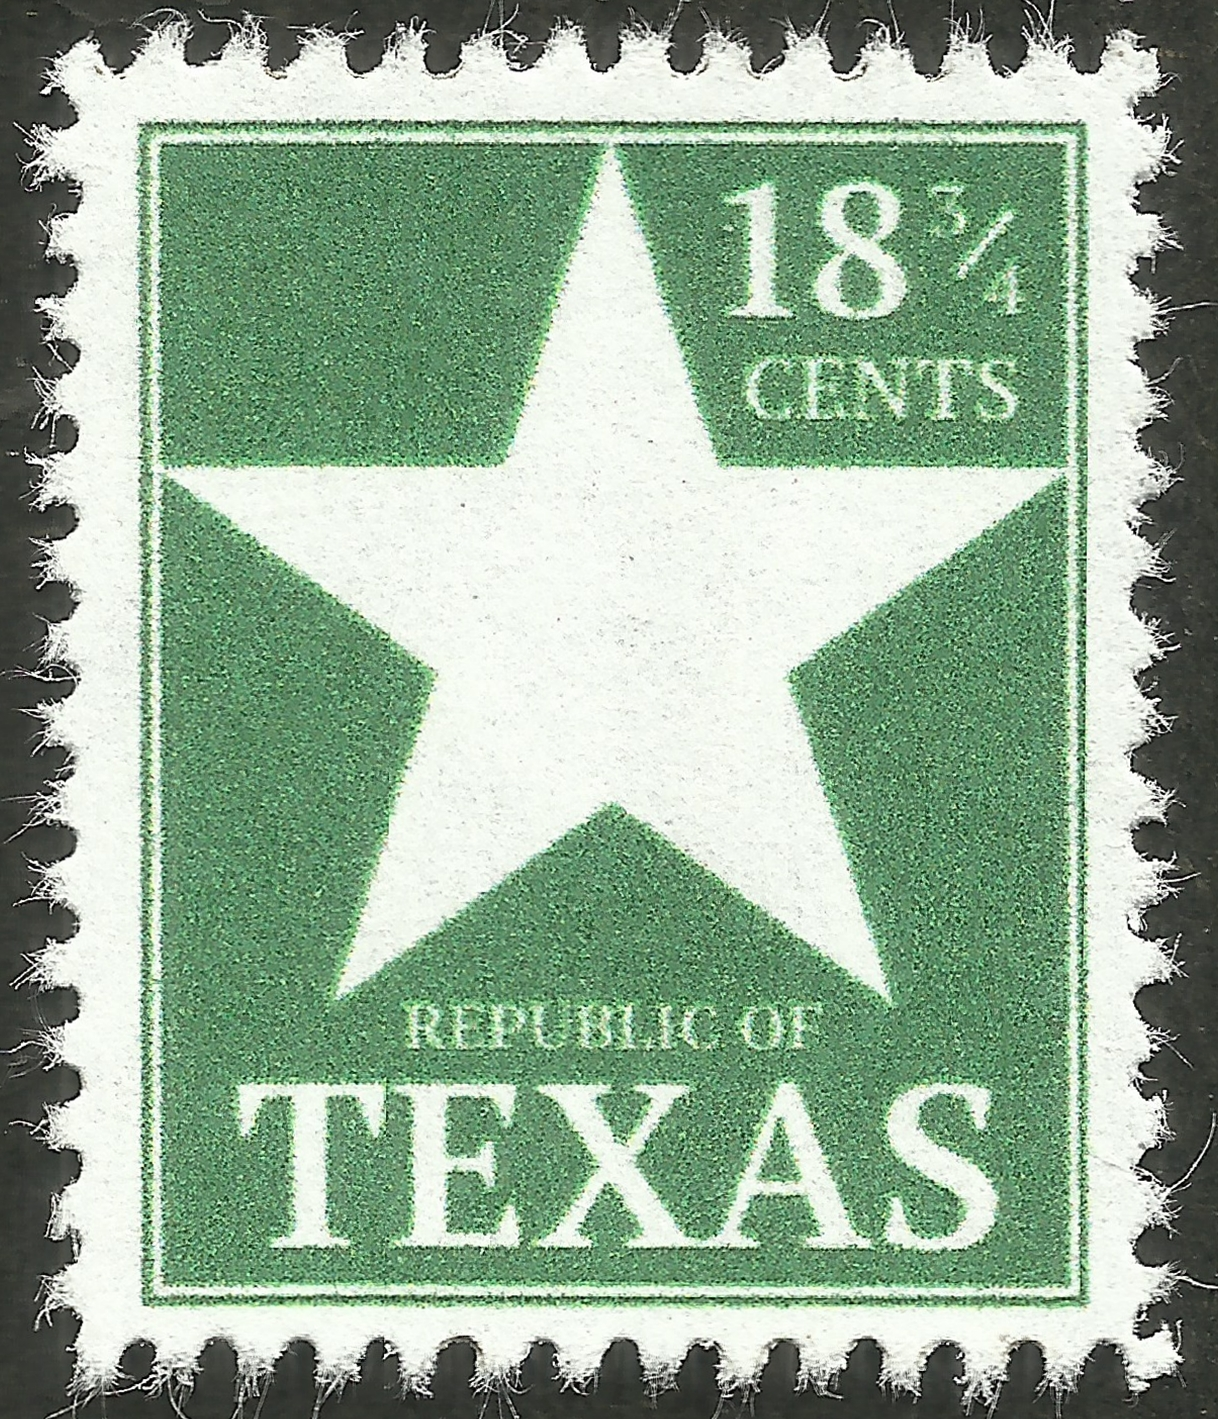 Fantasy stamp for the Republic of Texas, with a denomination based upon rate regulations established in 1836.